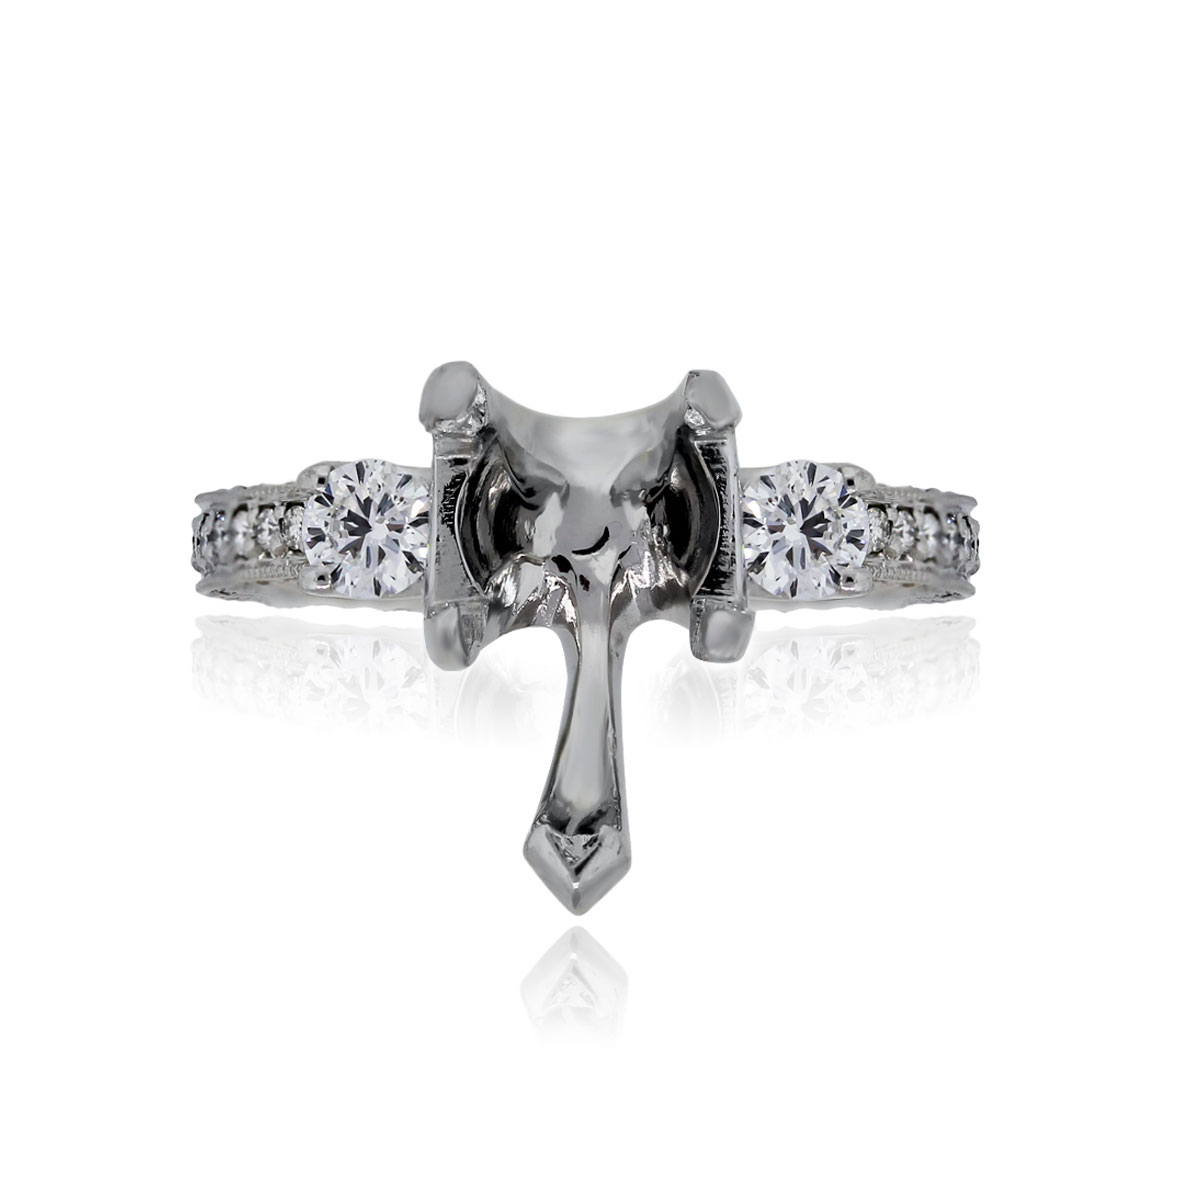 You are viewing this Platinum Pear Shape Diamond Engagement Ring Mounting!